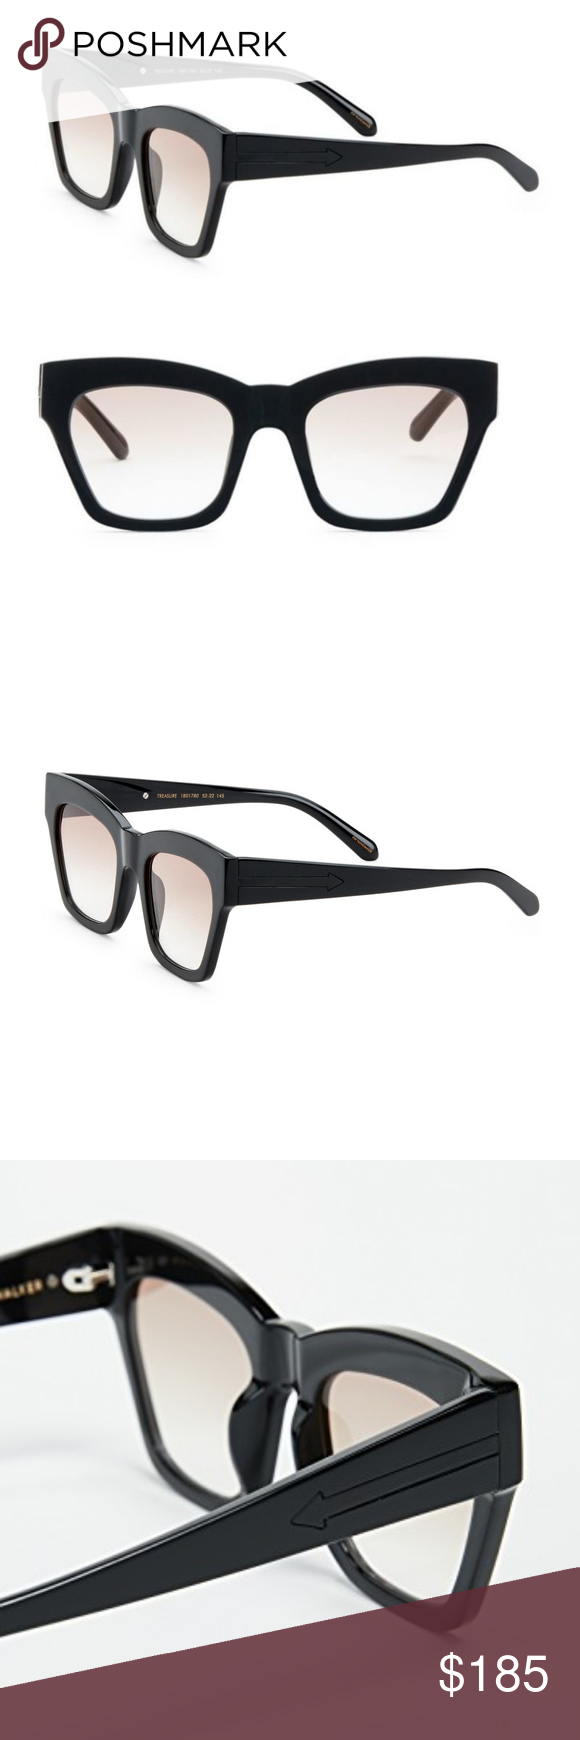 1a8ba605f2 KAREN WALKER TREASURE MODIFIED CAT EYE SUNGLASSES KAREN WALKER TREASURE  MODIFIED CAT EYE SUNGLASSES IN BLACK